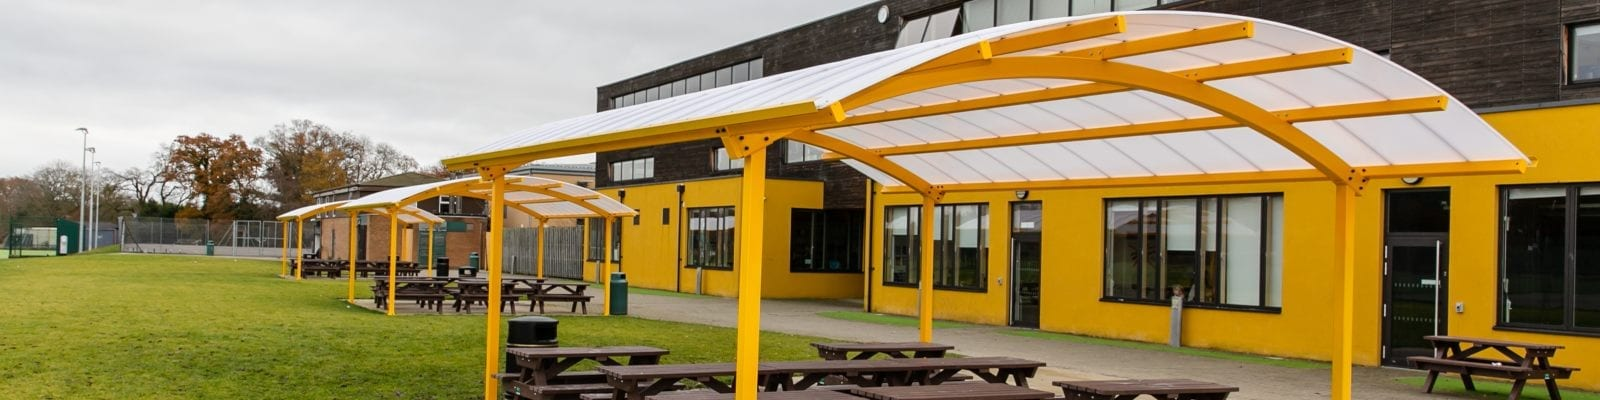 Curved roof shelters we fitted at Waingels College